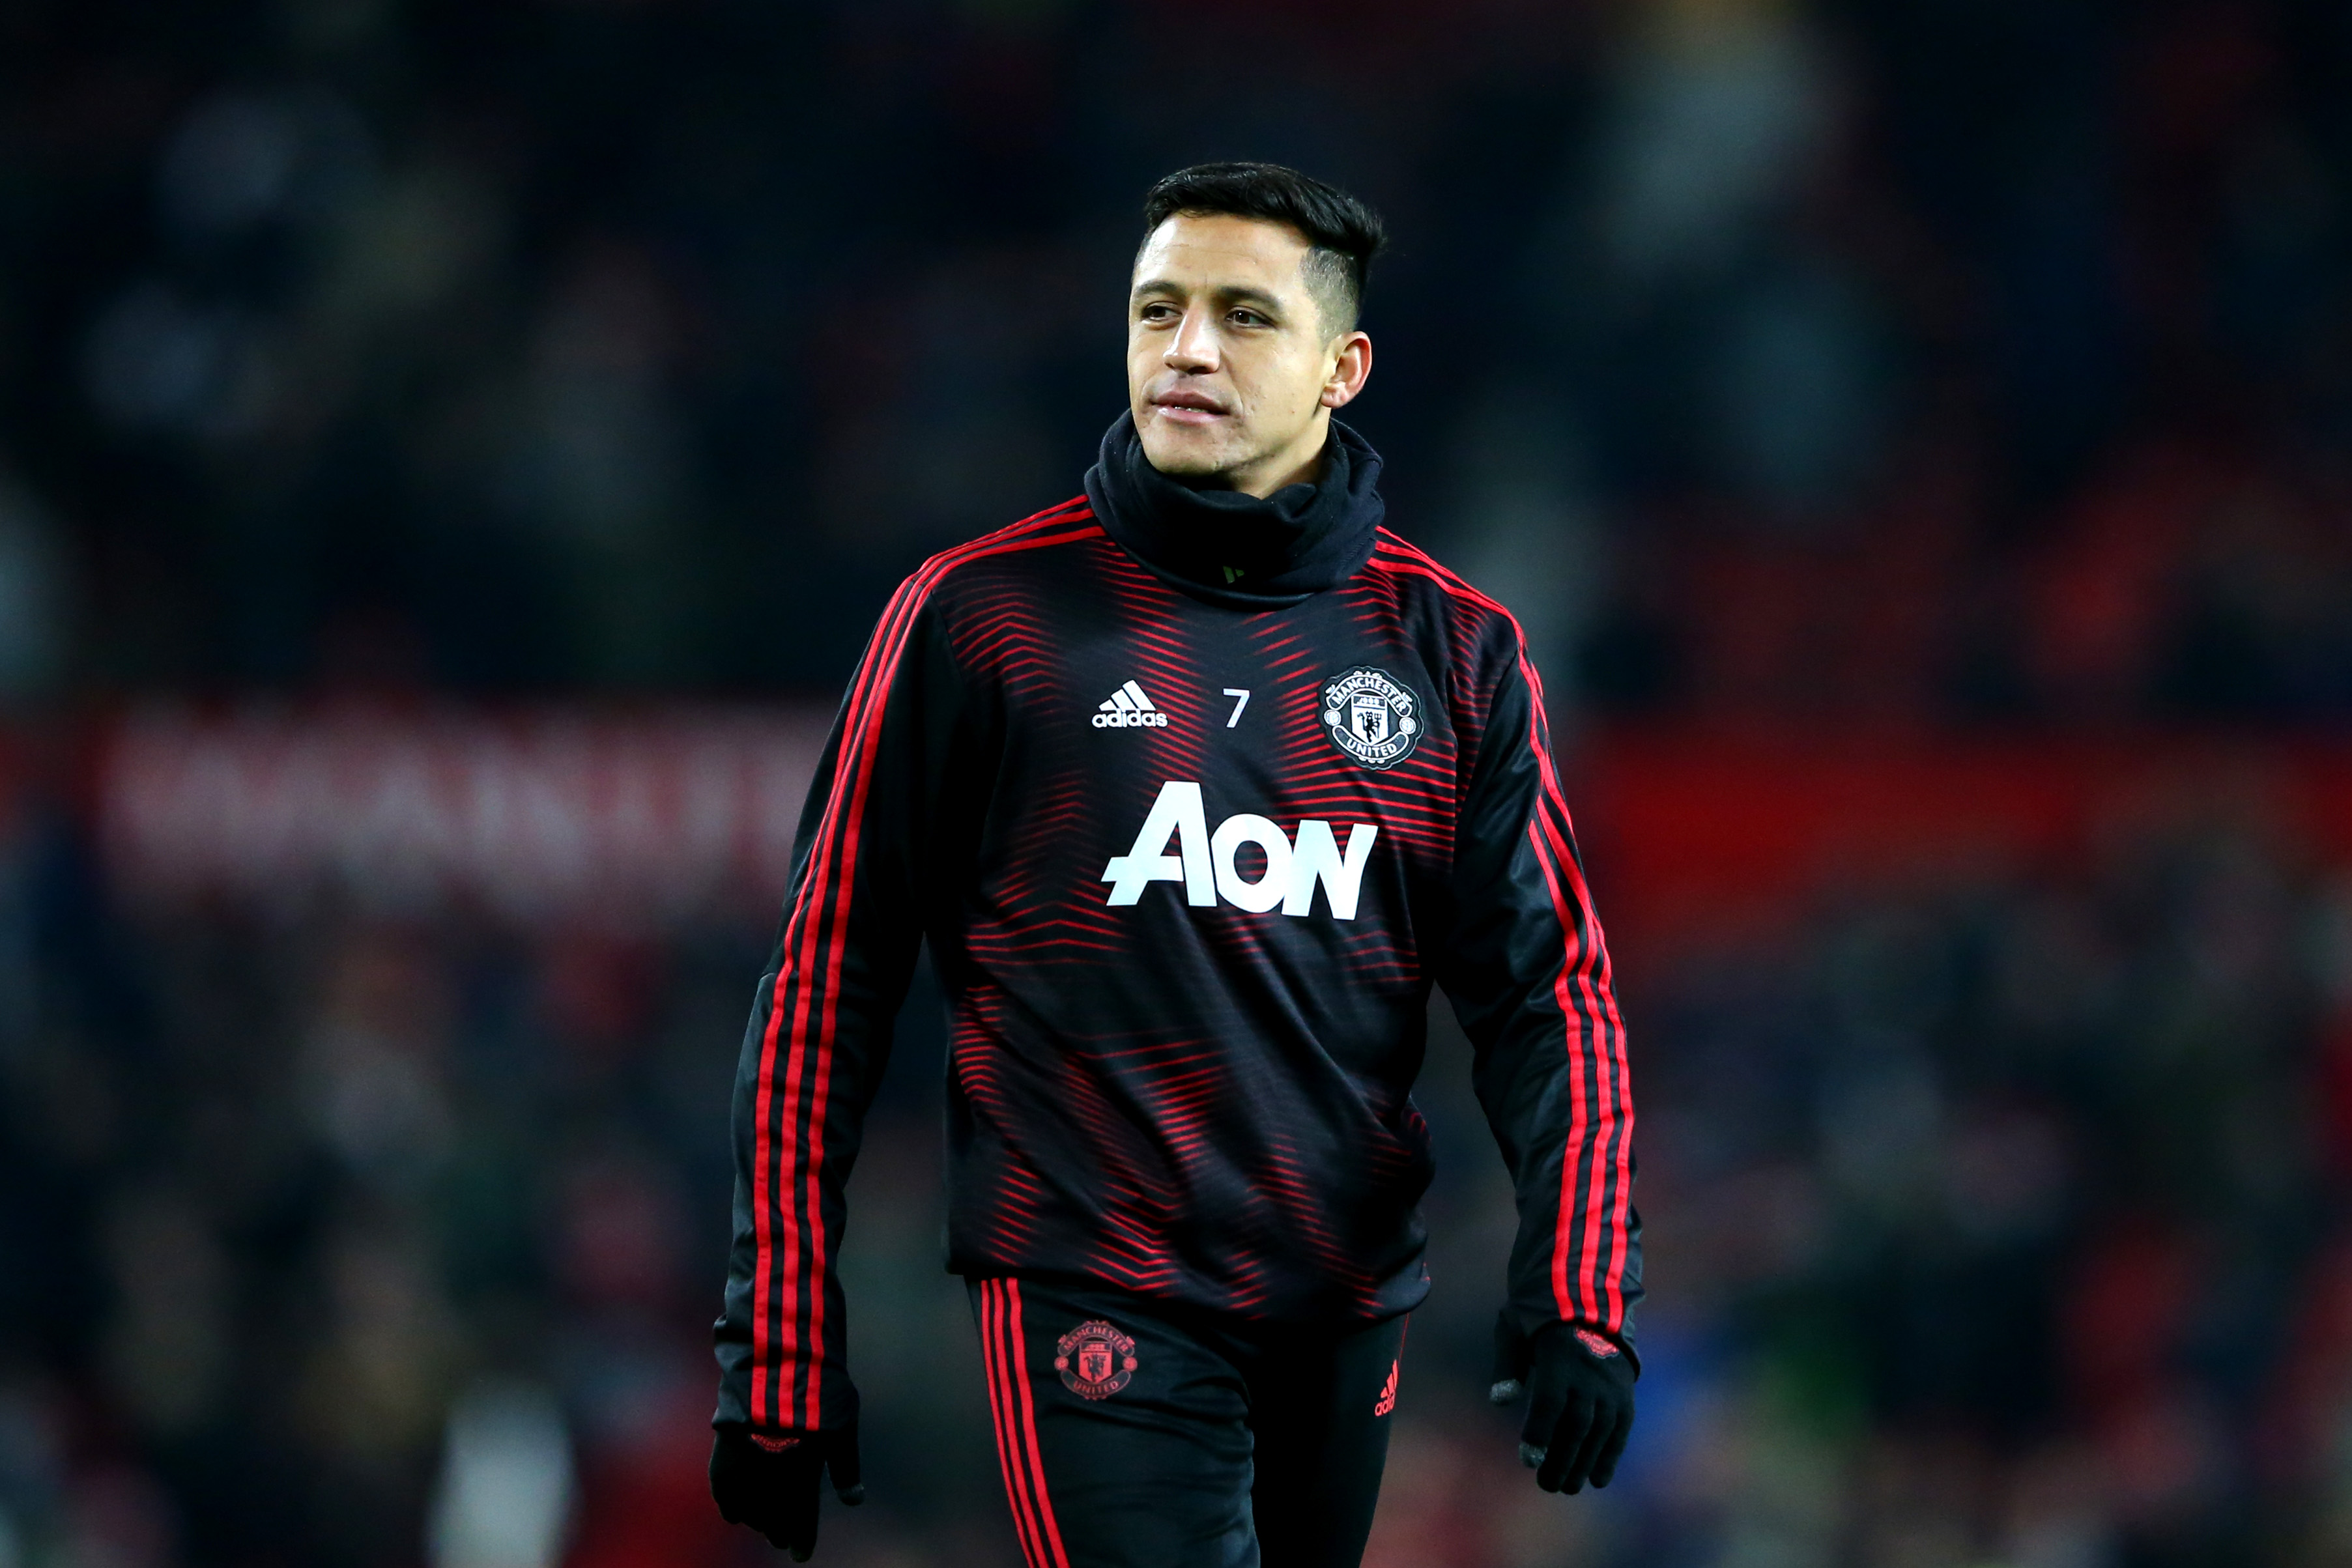 Will Alexis Sanchez spend time with the reserves or move away from Man Utd? (Photo by Alex Livesey/Getty Images)